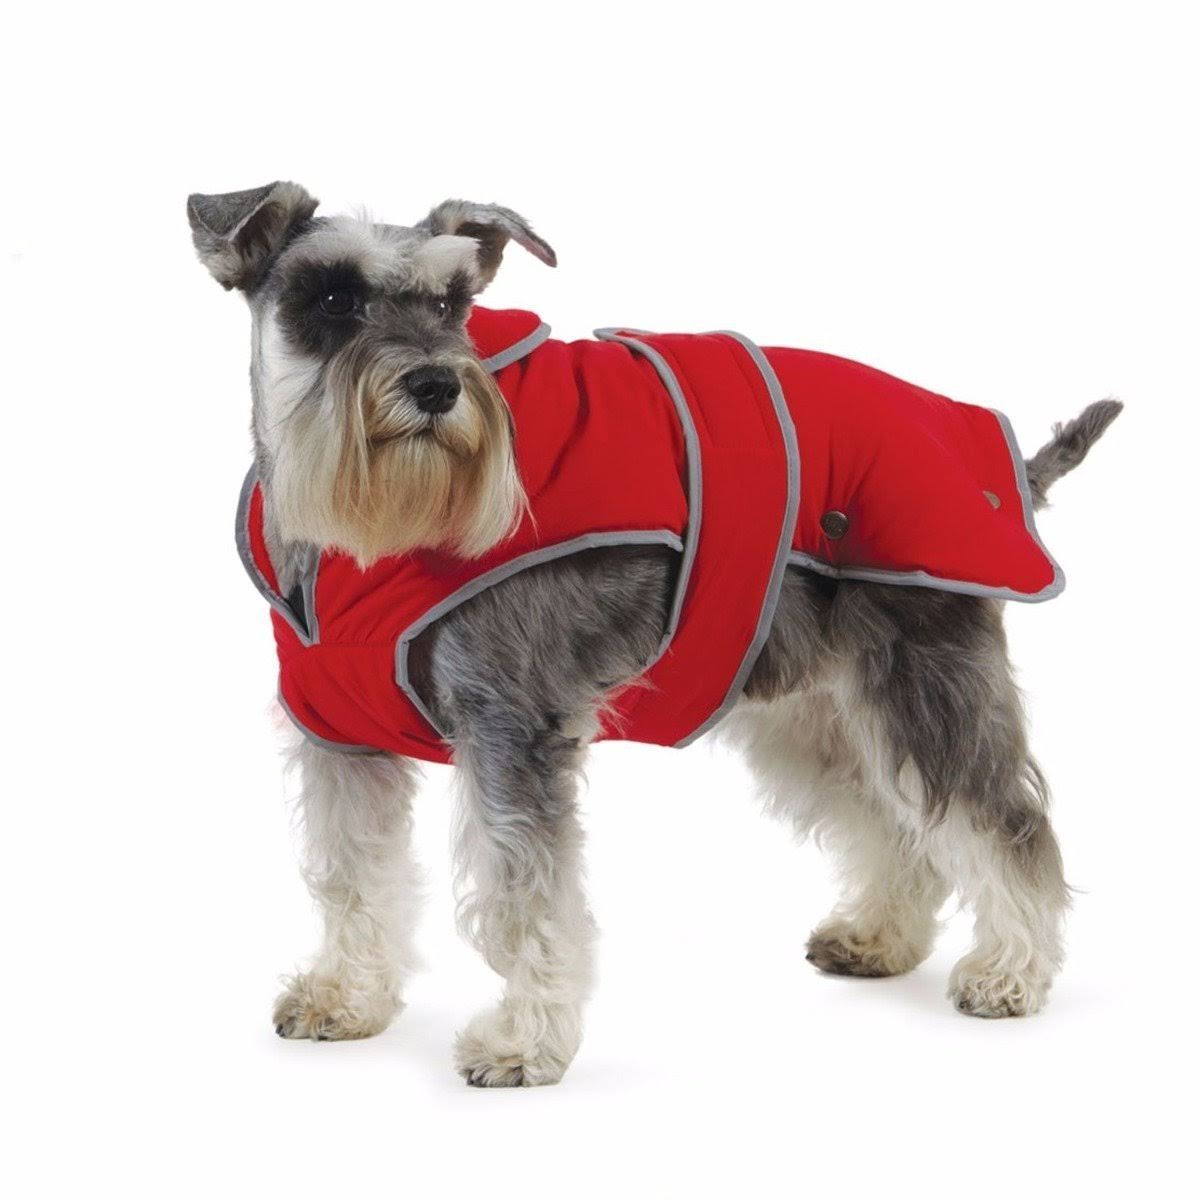 Stormguard Dog Coat - Red, Medium